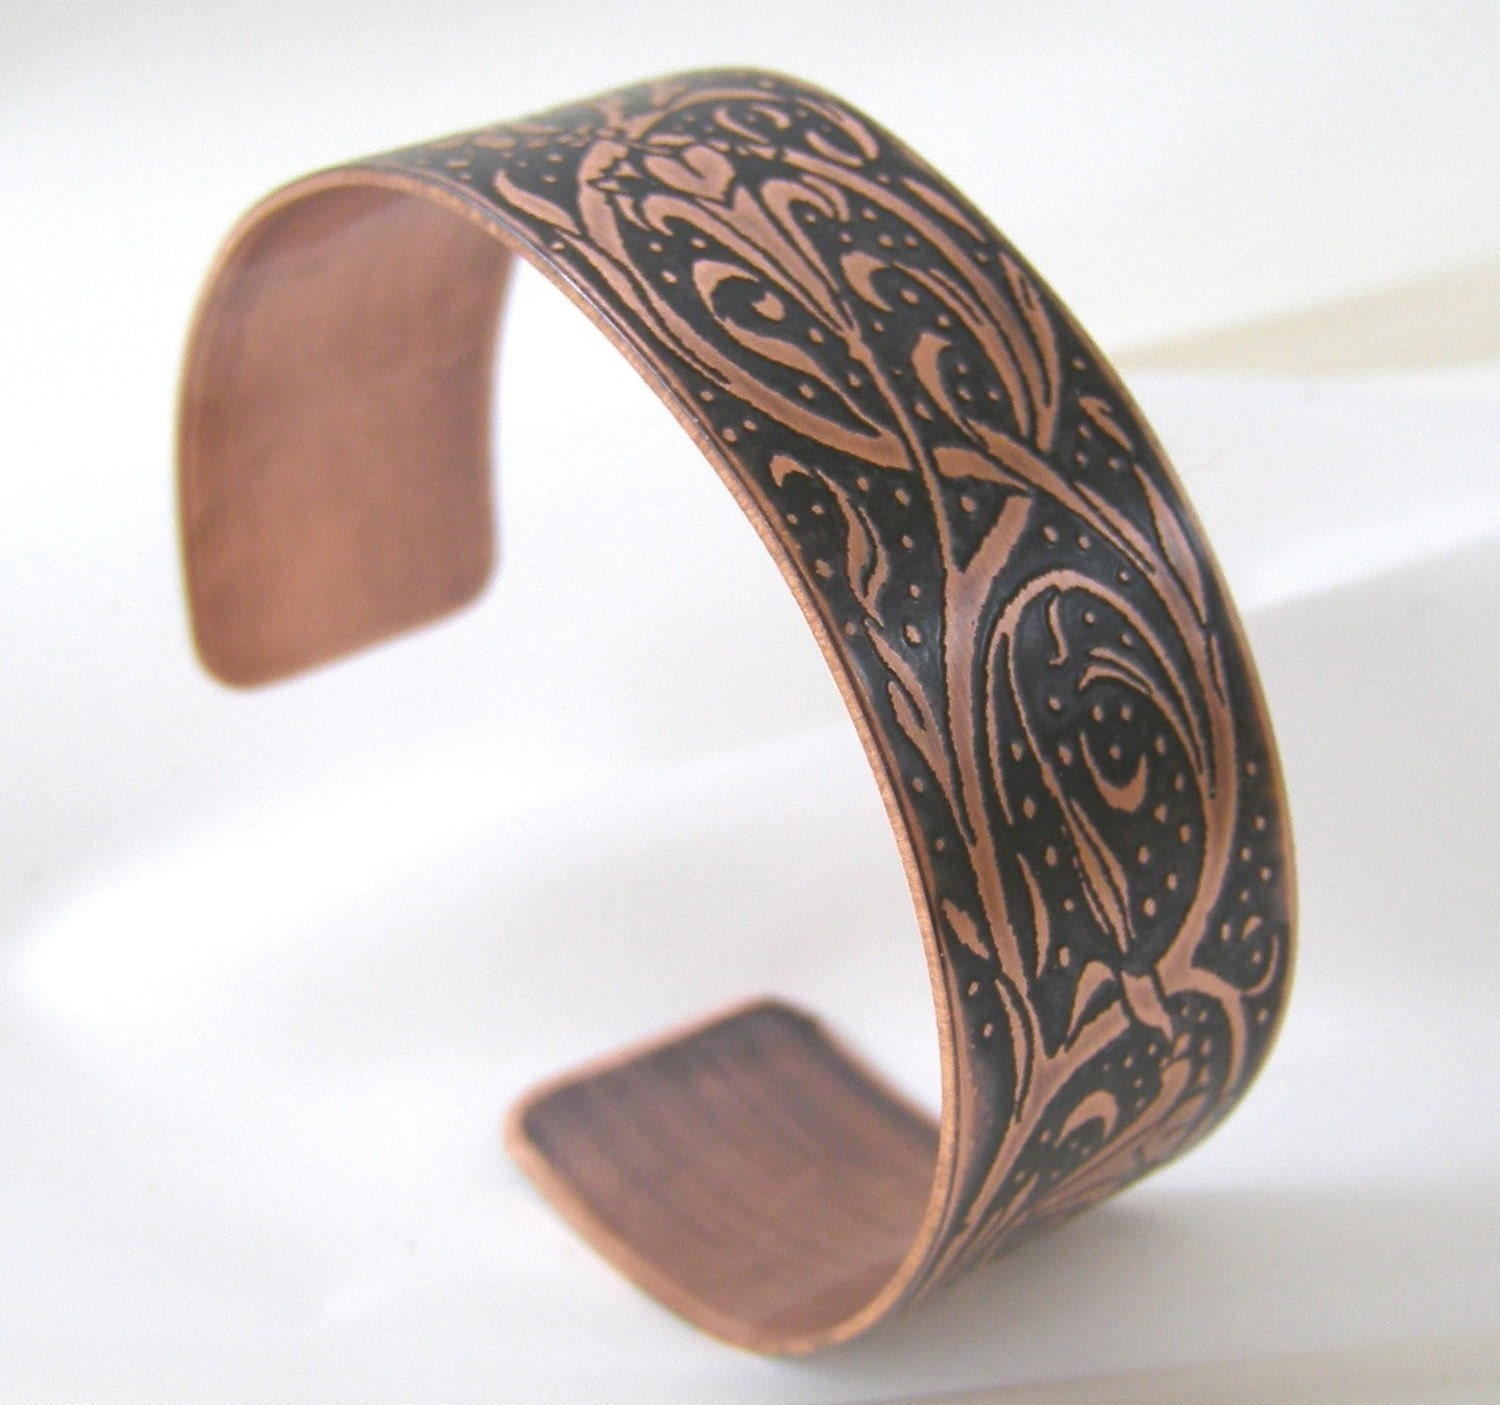 Etched Copper Cuff Bracelet - Nouveau Lilies - Sz Medium